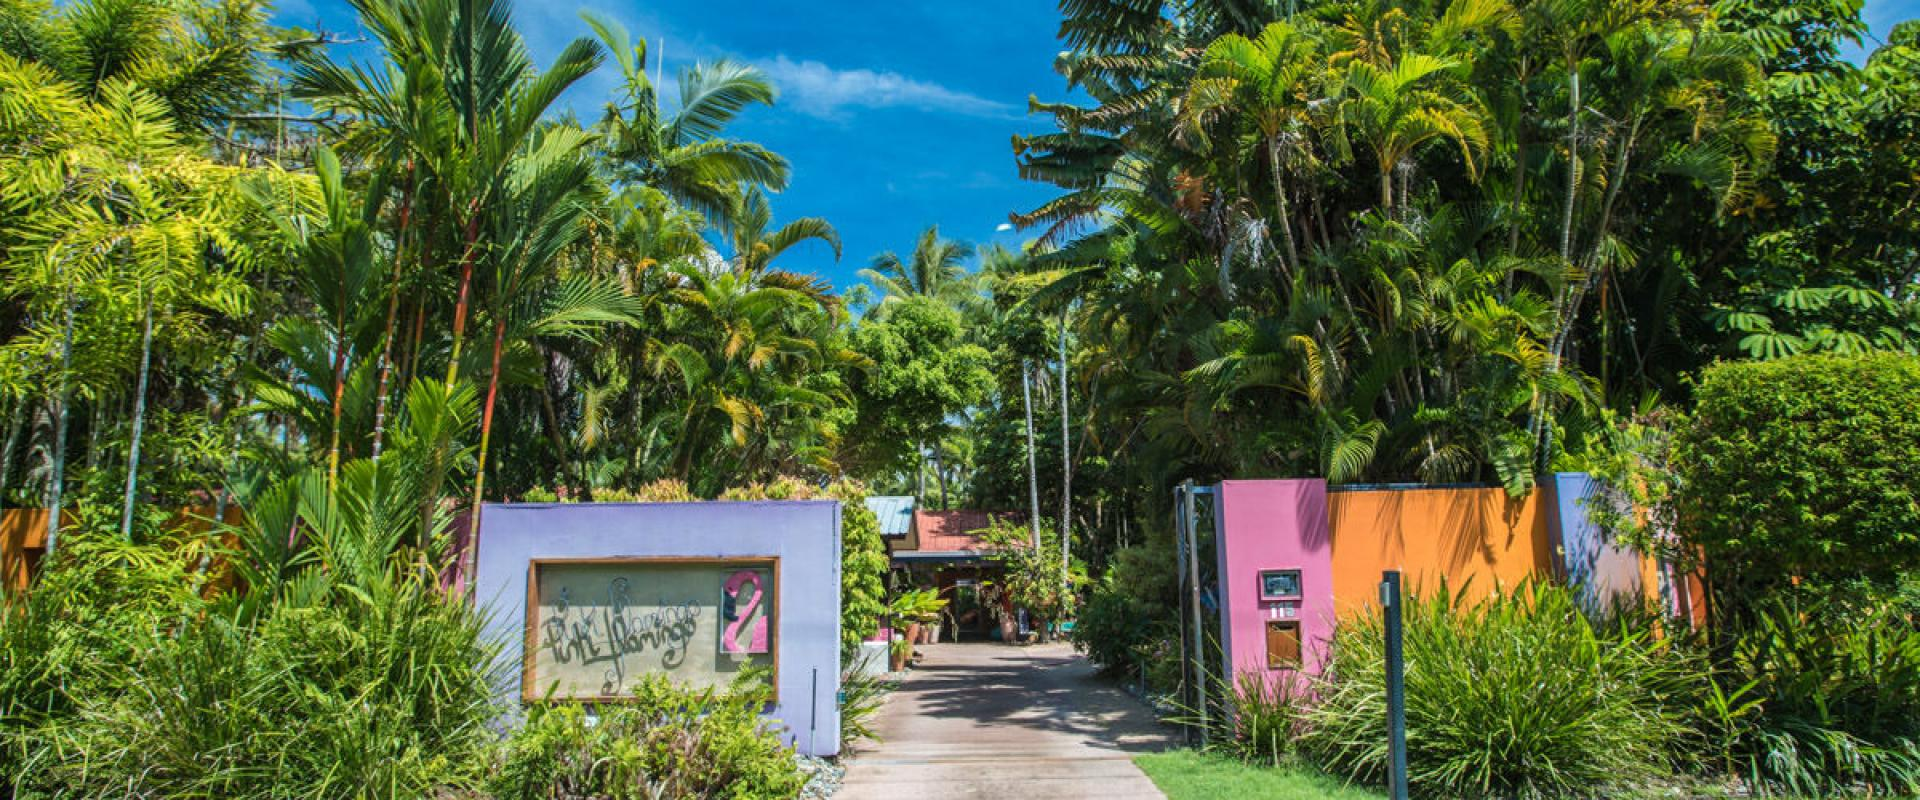 Pink Real Estate Port Douglas Flamingo Intimate And Private Resort Hotel In